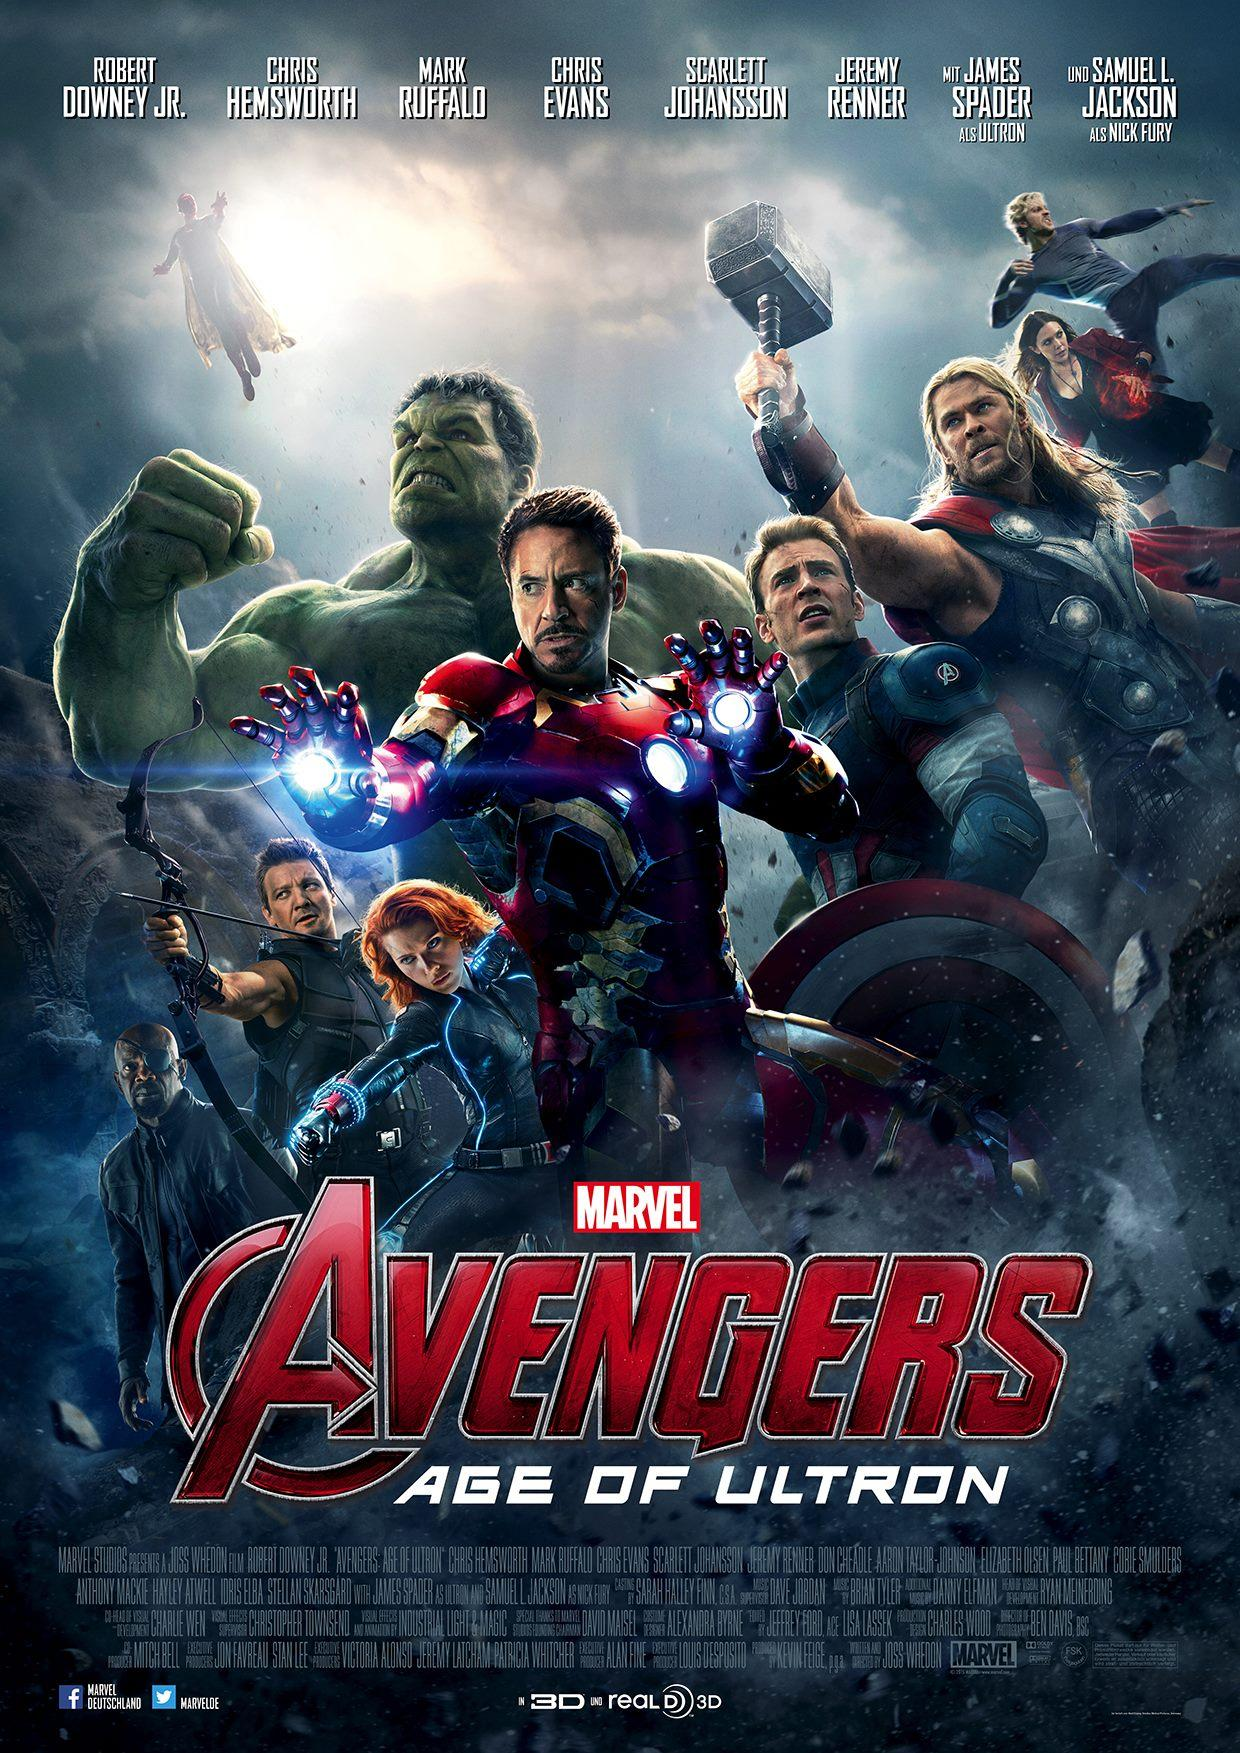 FREE DOWNLOAD of 'Marvel's Avengers: Age of Ultron' Firsts Digital Comic Bundle' with Ticket Purchase @ Fandango VIPs